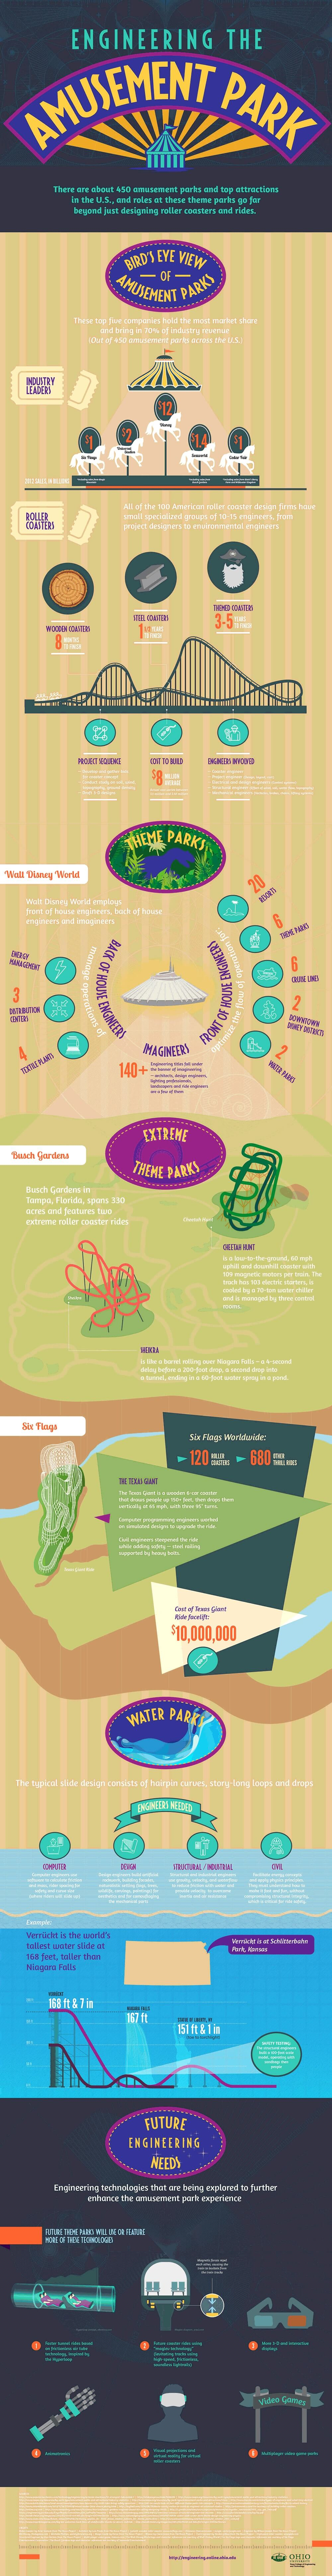 Amusement Park and Roller Coaster Engineering infographic